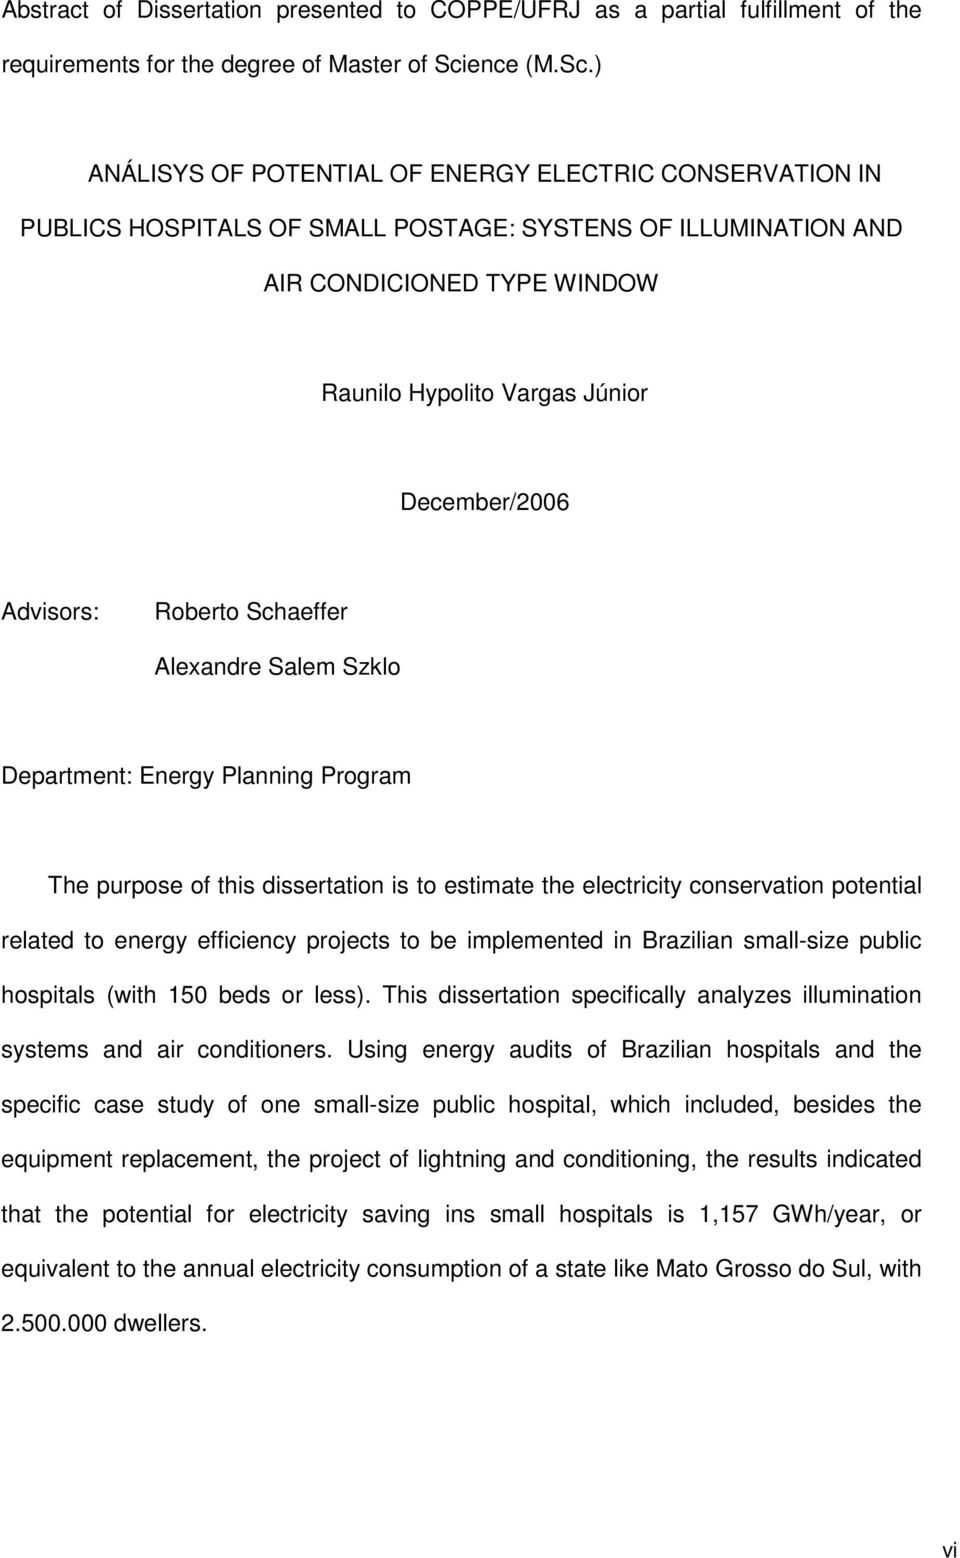 ) ANÁLISYS OF POTENTIAL OF ENERGY ELECTRIC CONSERVATION IN PUBLICS HOSPITALS OF SMALL POSTAGE: SYSTENS OF ILLUMINATION AND AIR CONDICIONED TYPE WINDOW Raunilo Hypolito Vargas Júnior December/2006